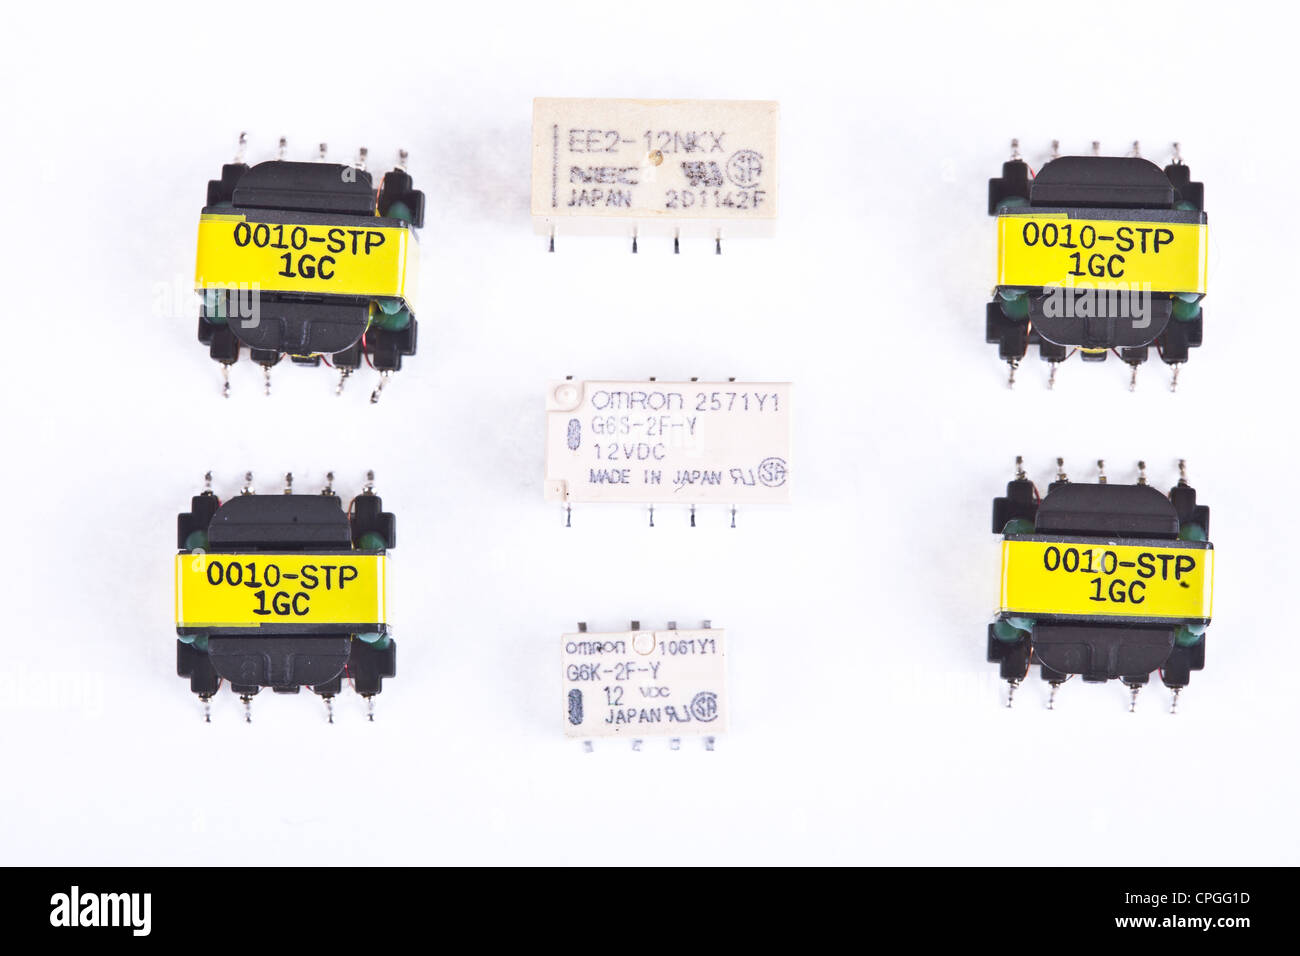 SMT / SMD relays and transformers used to assembly PCB's printed circuit in the electronics industry, electronics - Stock Image